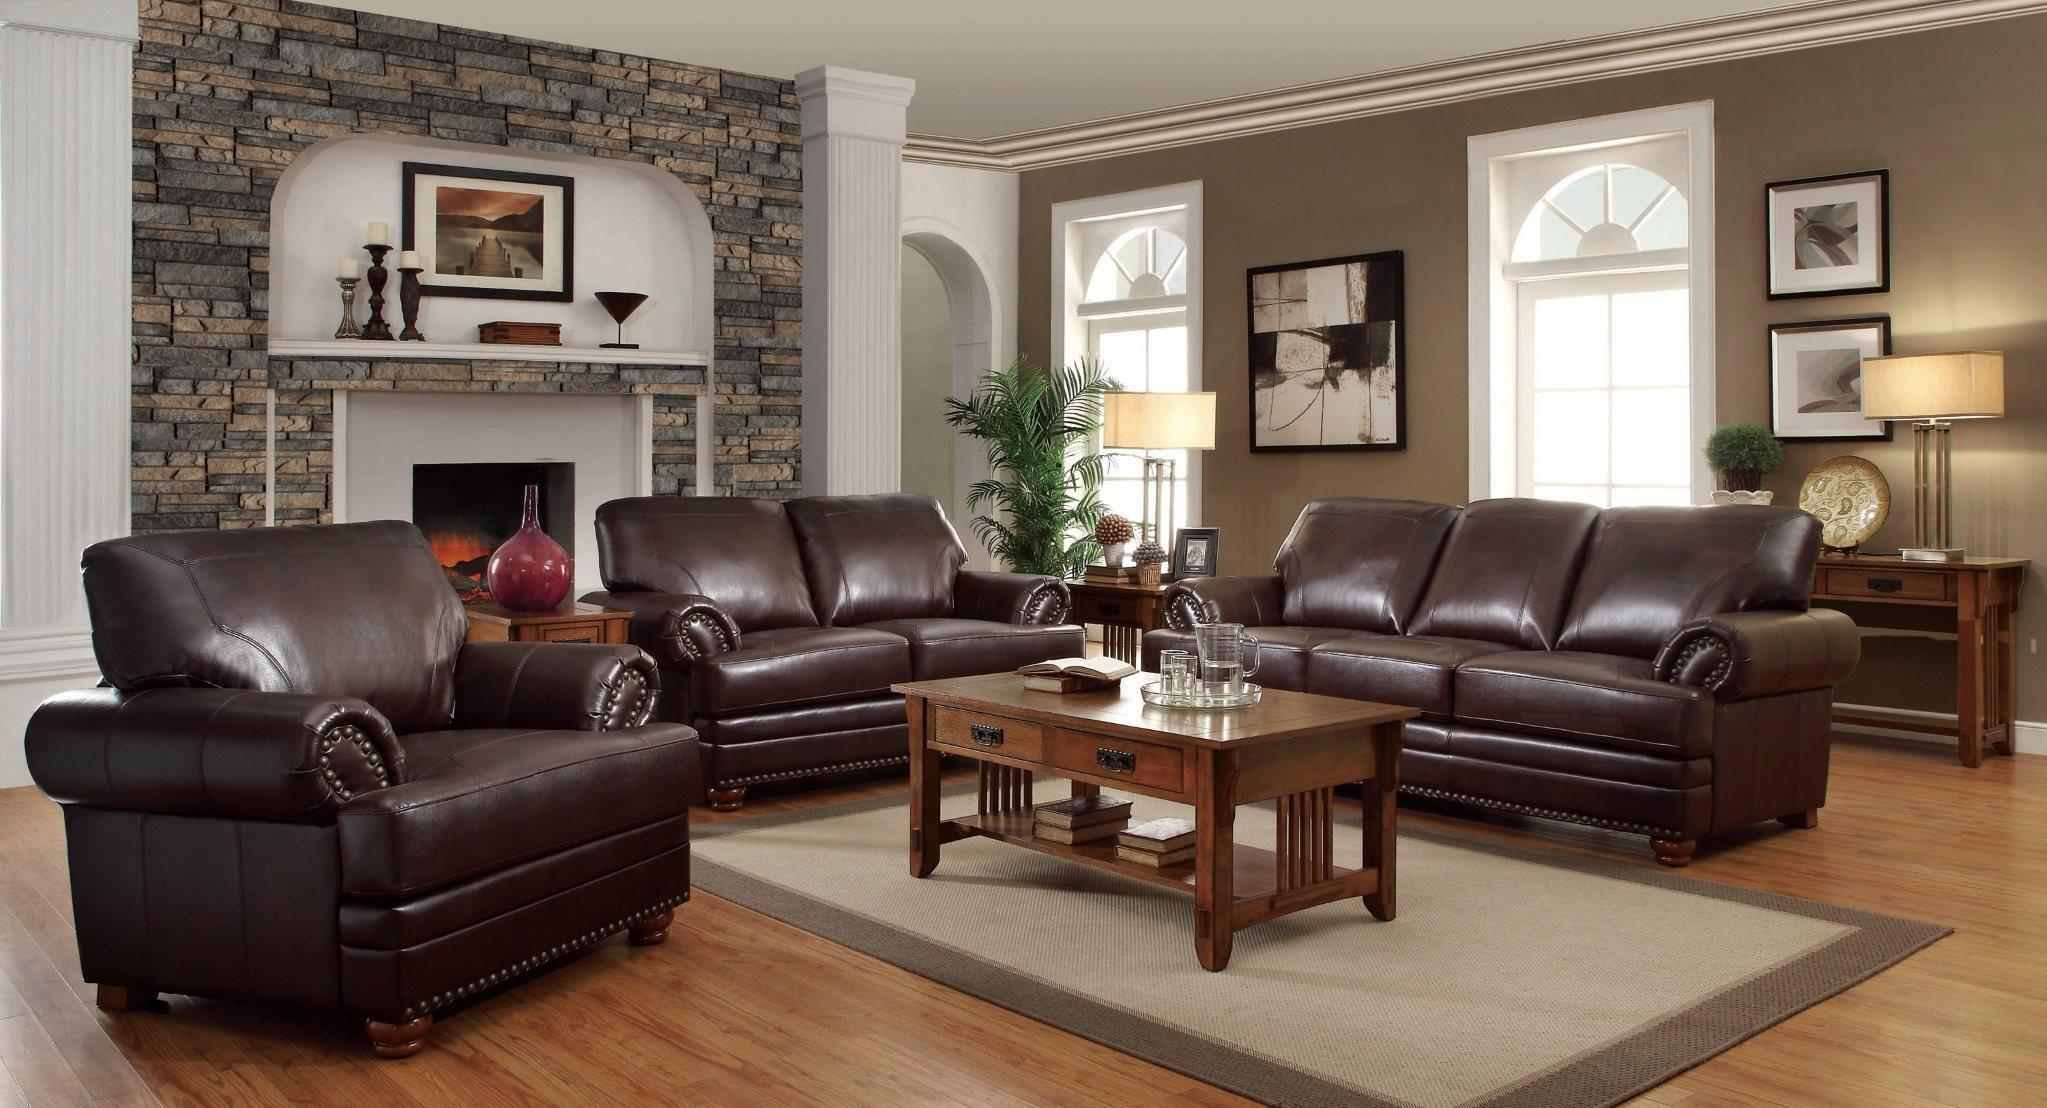 Coaster Colton Stationary Living Room Group - Item Number: 504410 Living Room Group 1